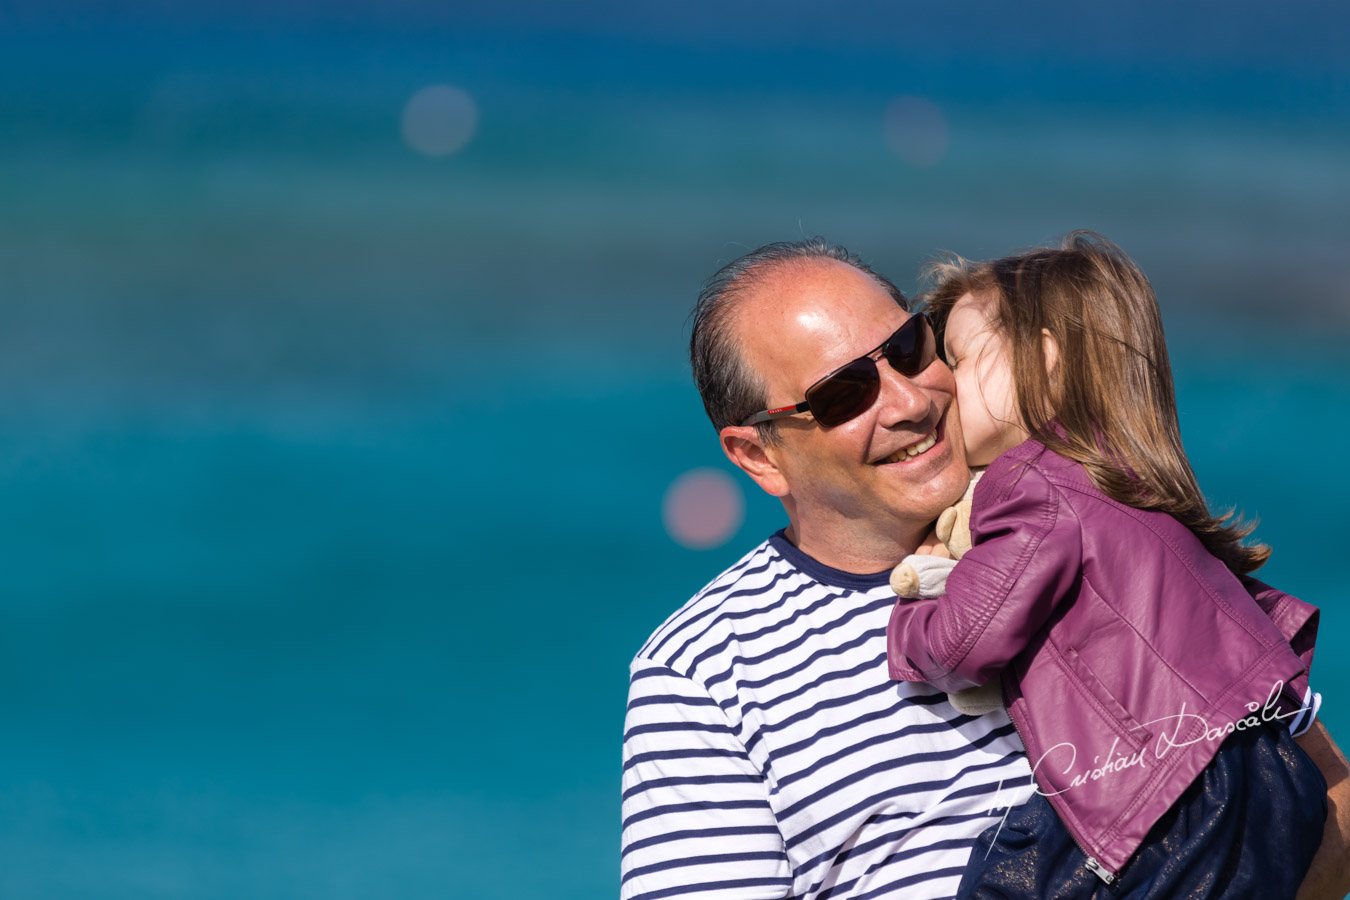 A Family Photo Shoot in Protaras, Cyprus - 05